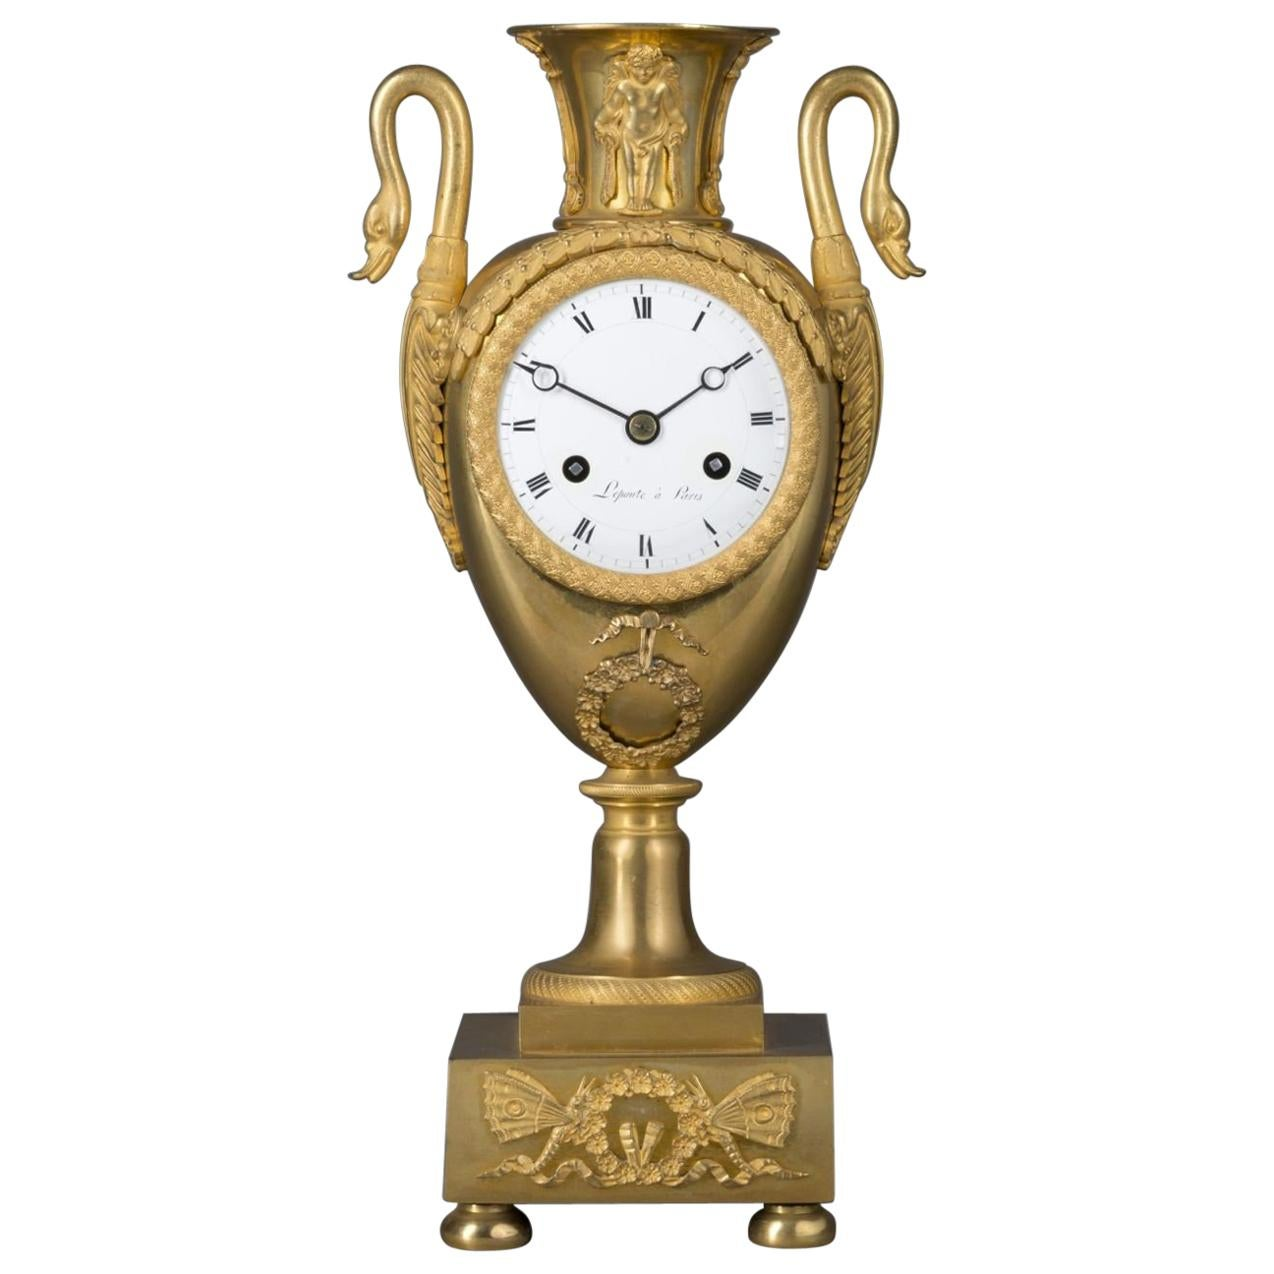 Empire Clock in the Form of a Classical Urn, by Maison Lepautre, circa 1825